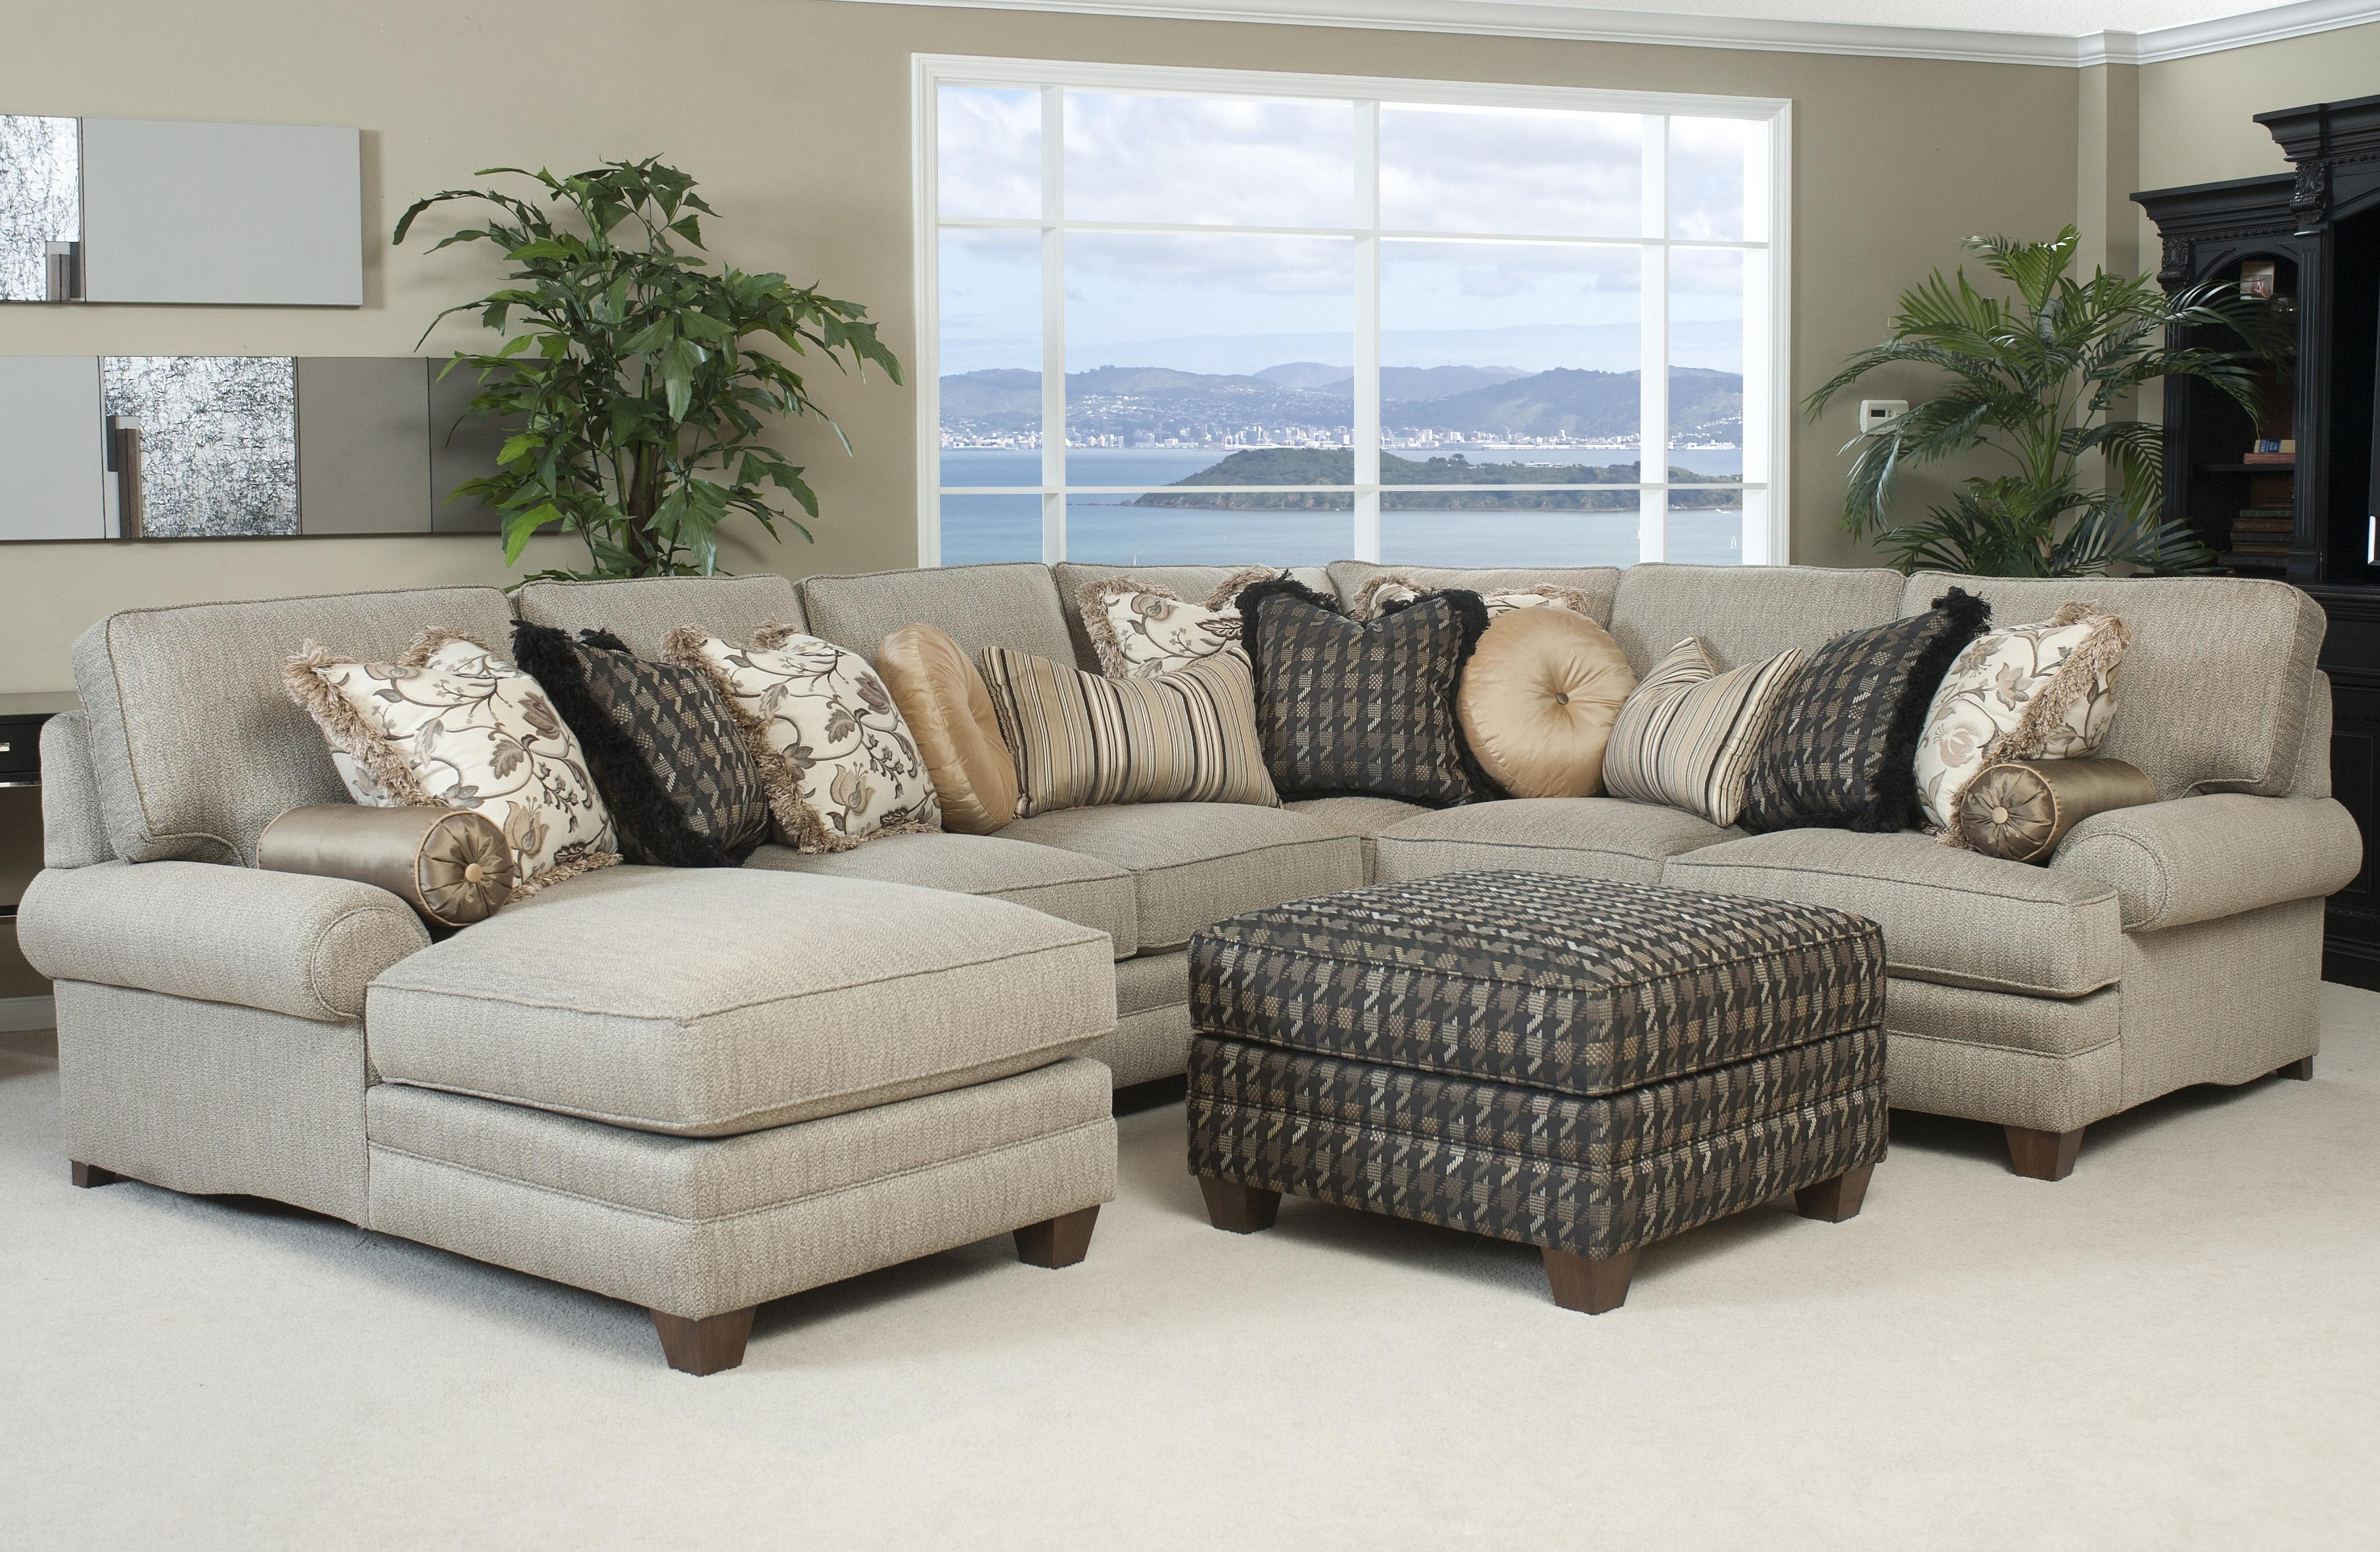 High Quality Sectional Sofas With Regard To Fashionable Large Sectional Sofa With Ottoman (View 7 of 20)